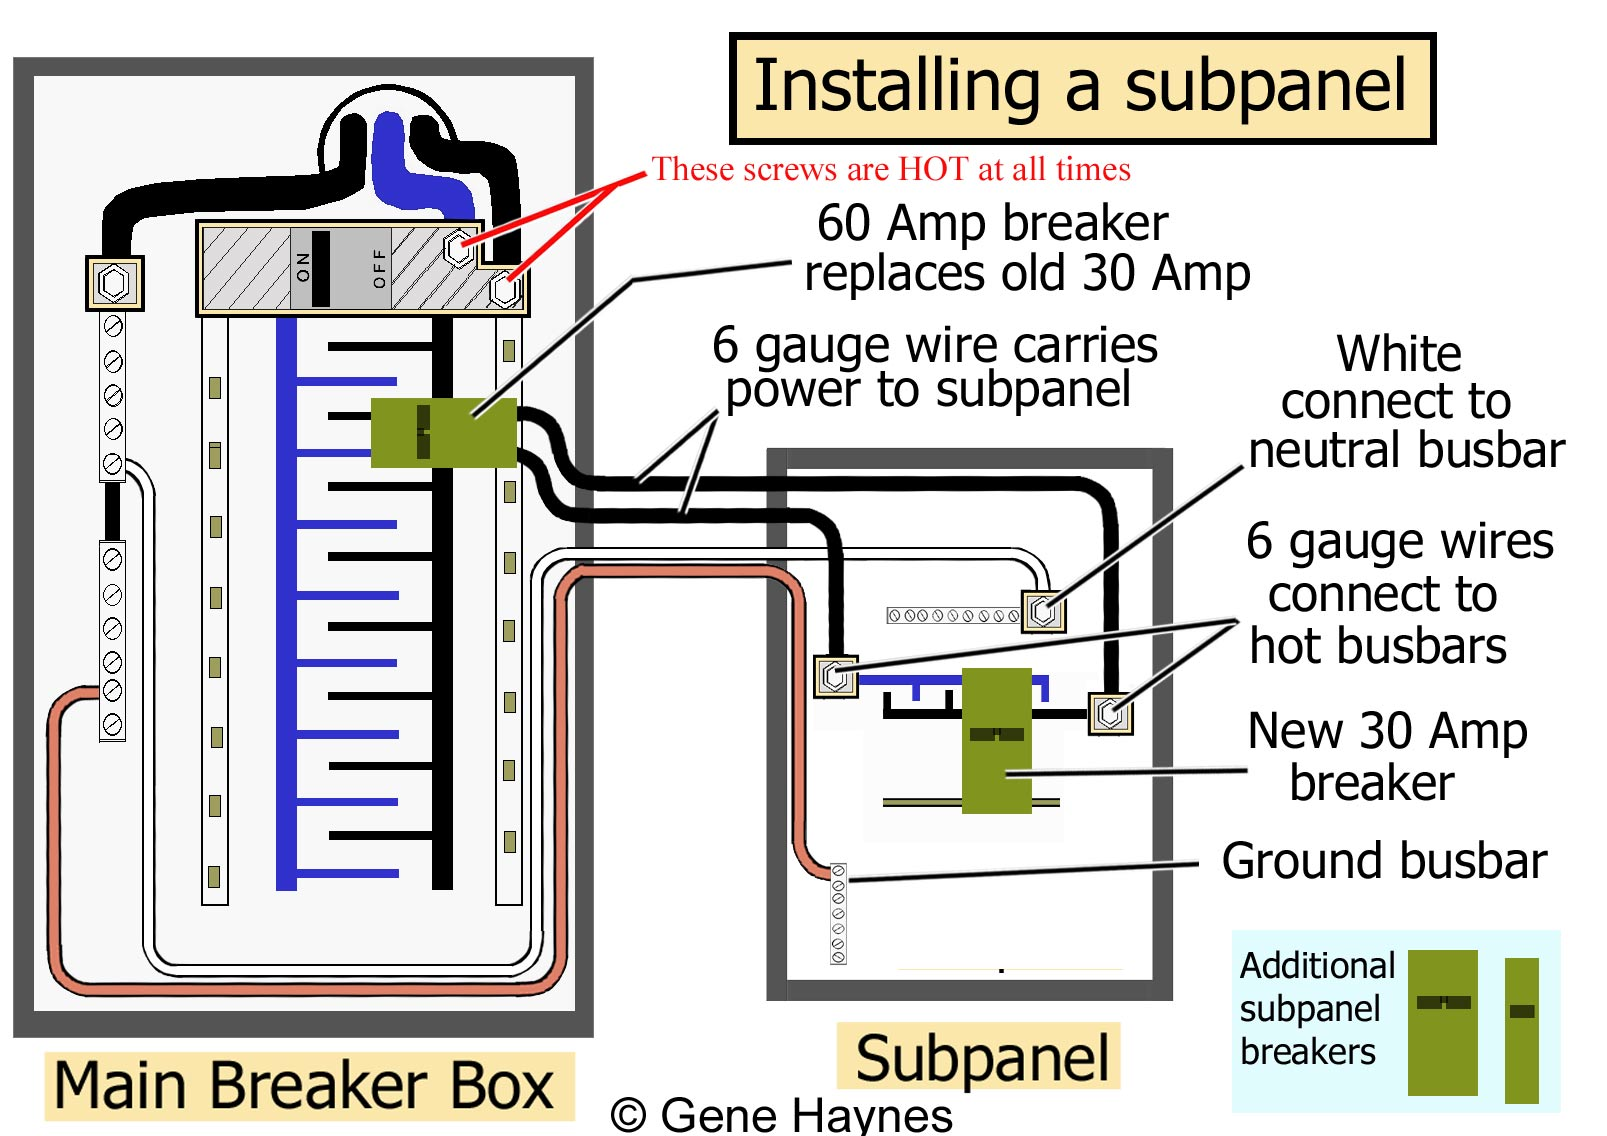 Main subpanel 2aa how to install a subpanel how to install main lug 60 amp sub panel wiring diagram at creativeand.co